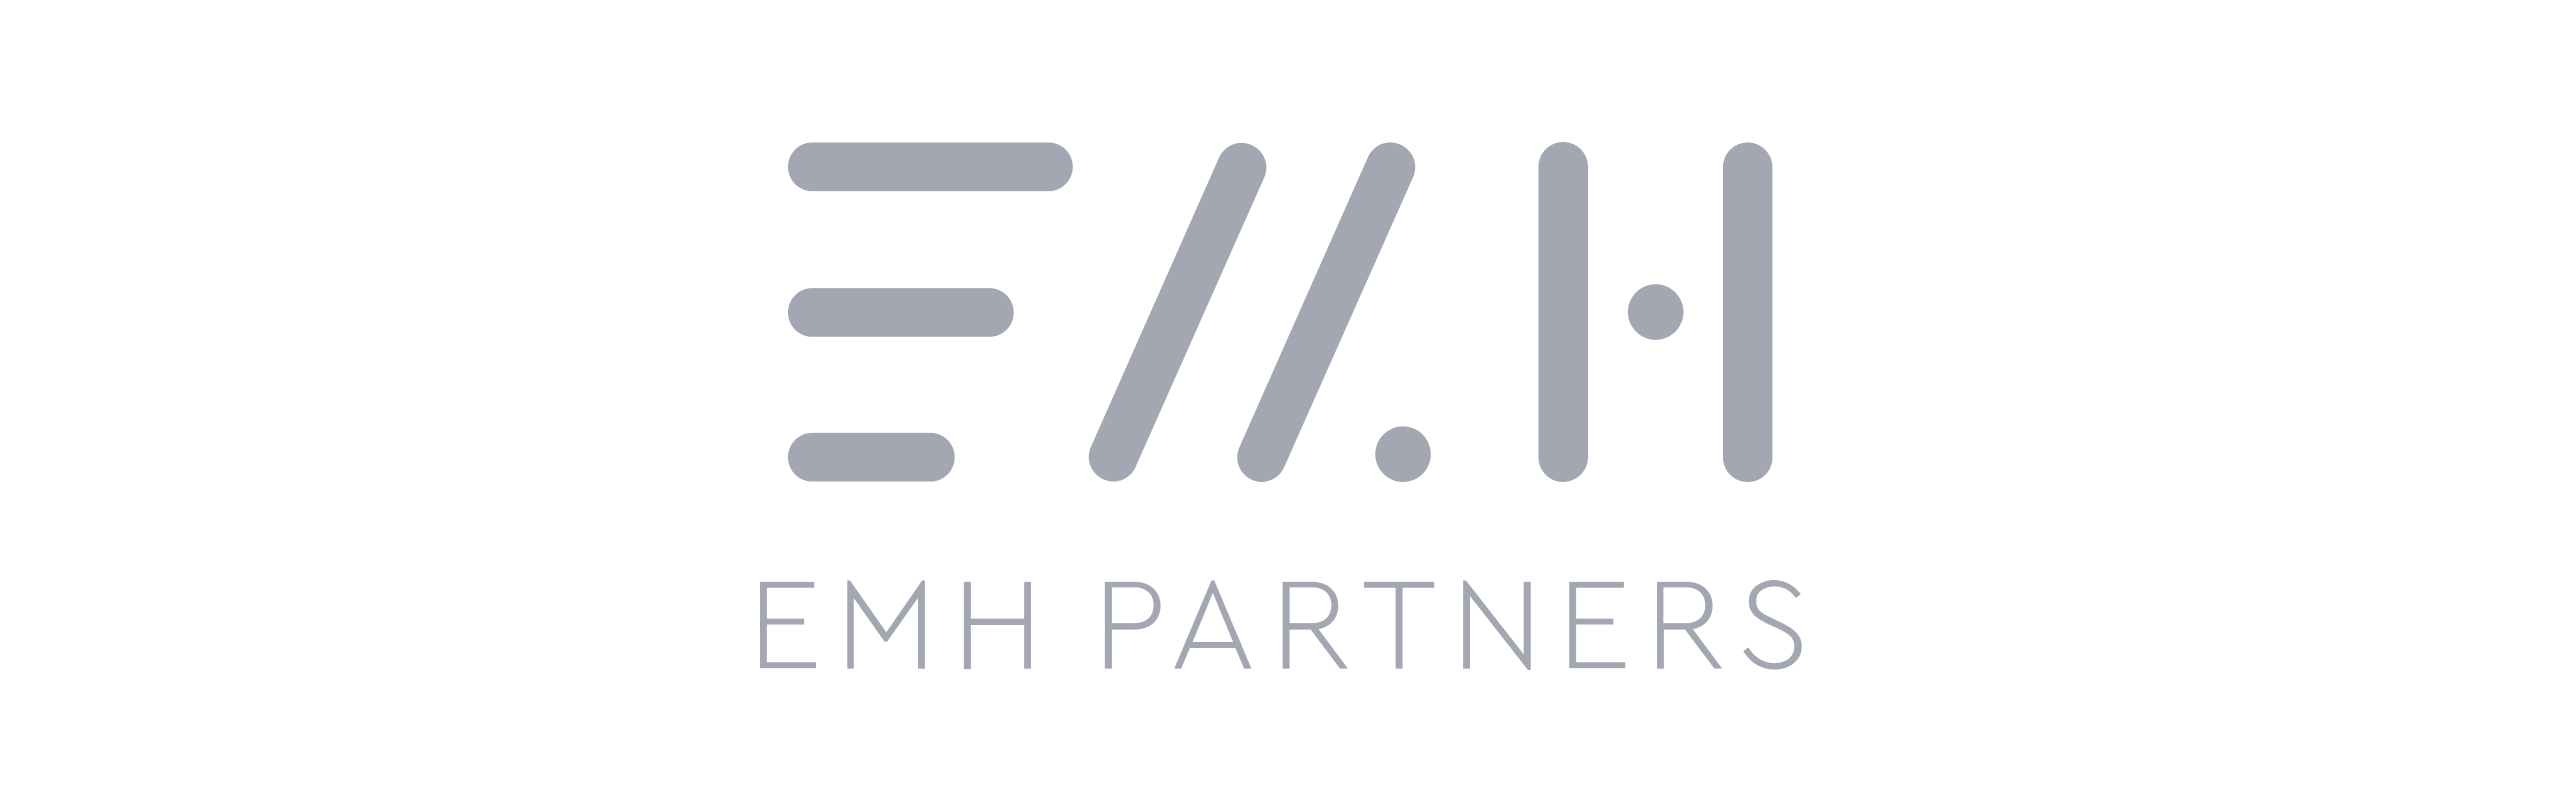 Technology & product due diligence   Code & Co. advises EMH Partners (logo shown)